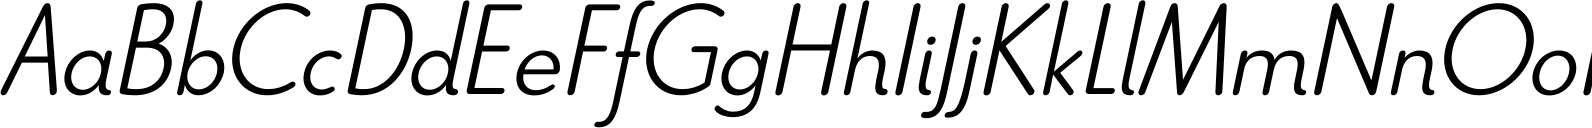 Le Havre Rounded Light Italic Font